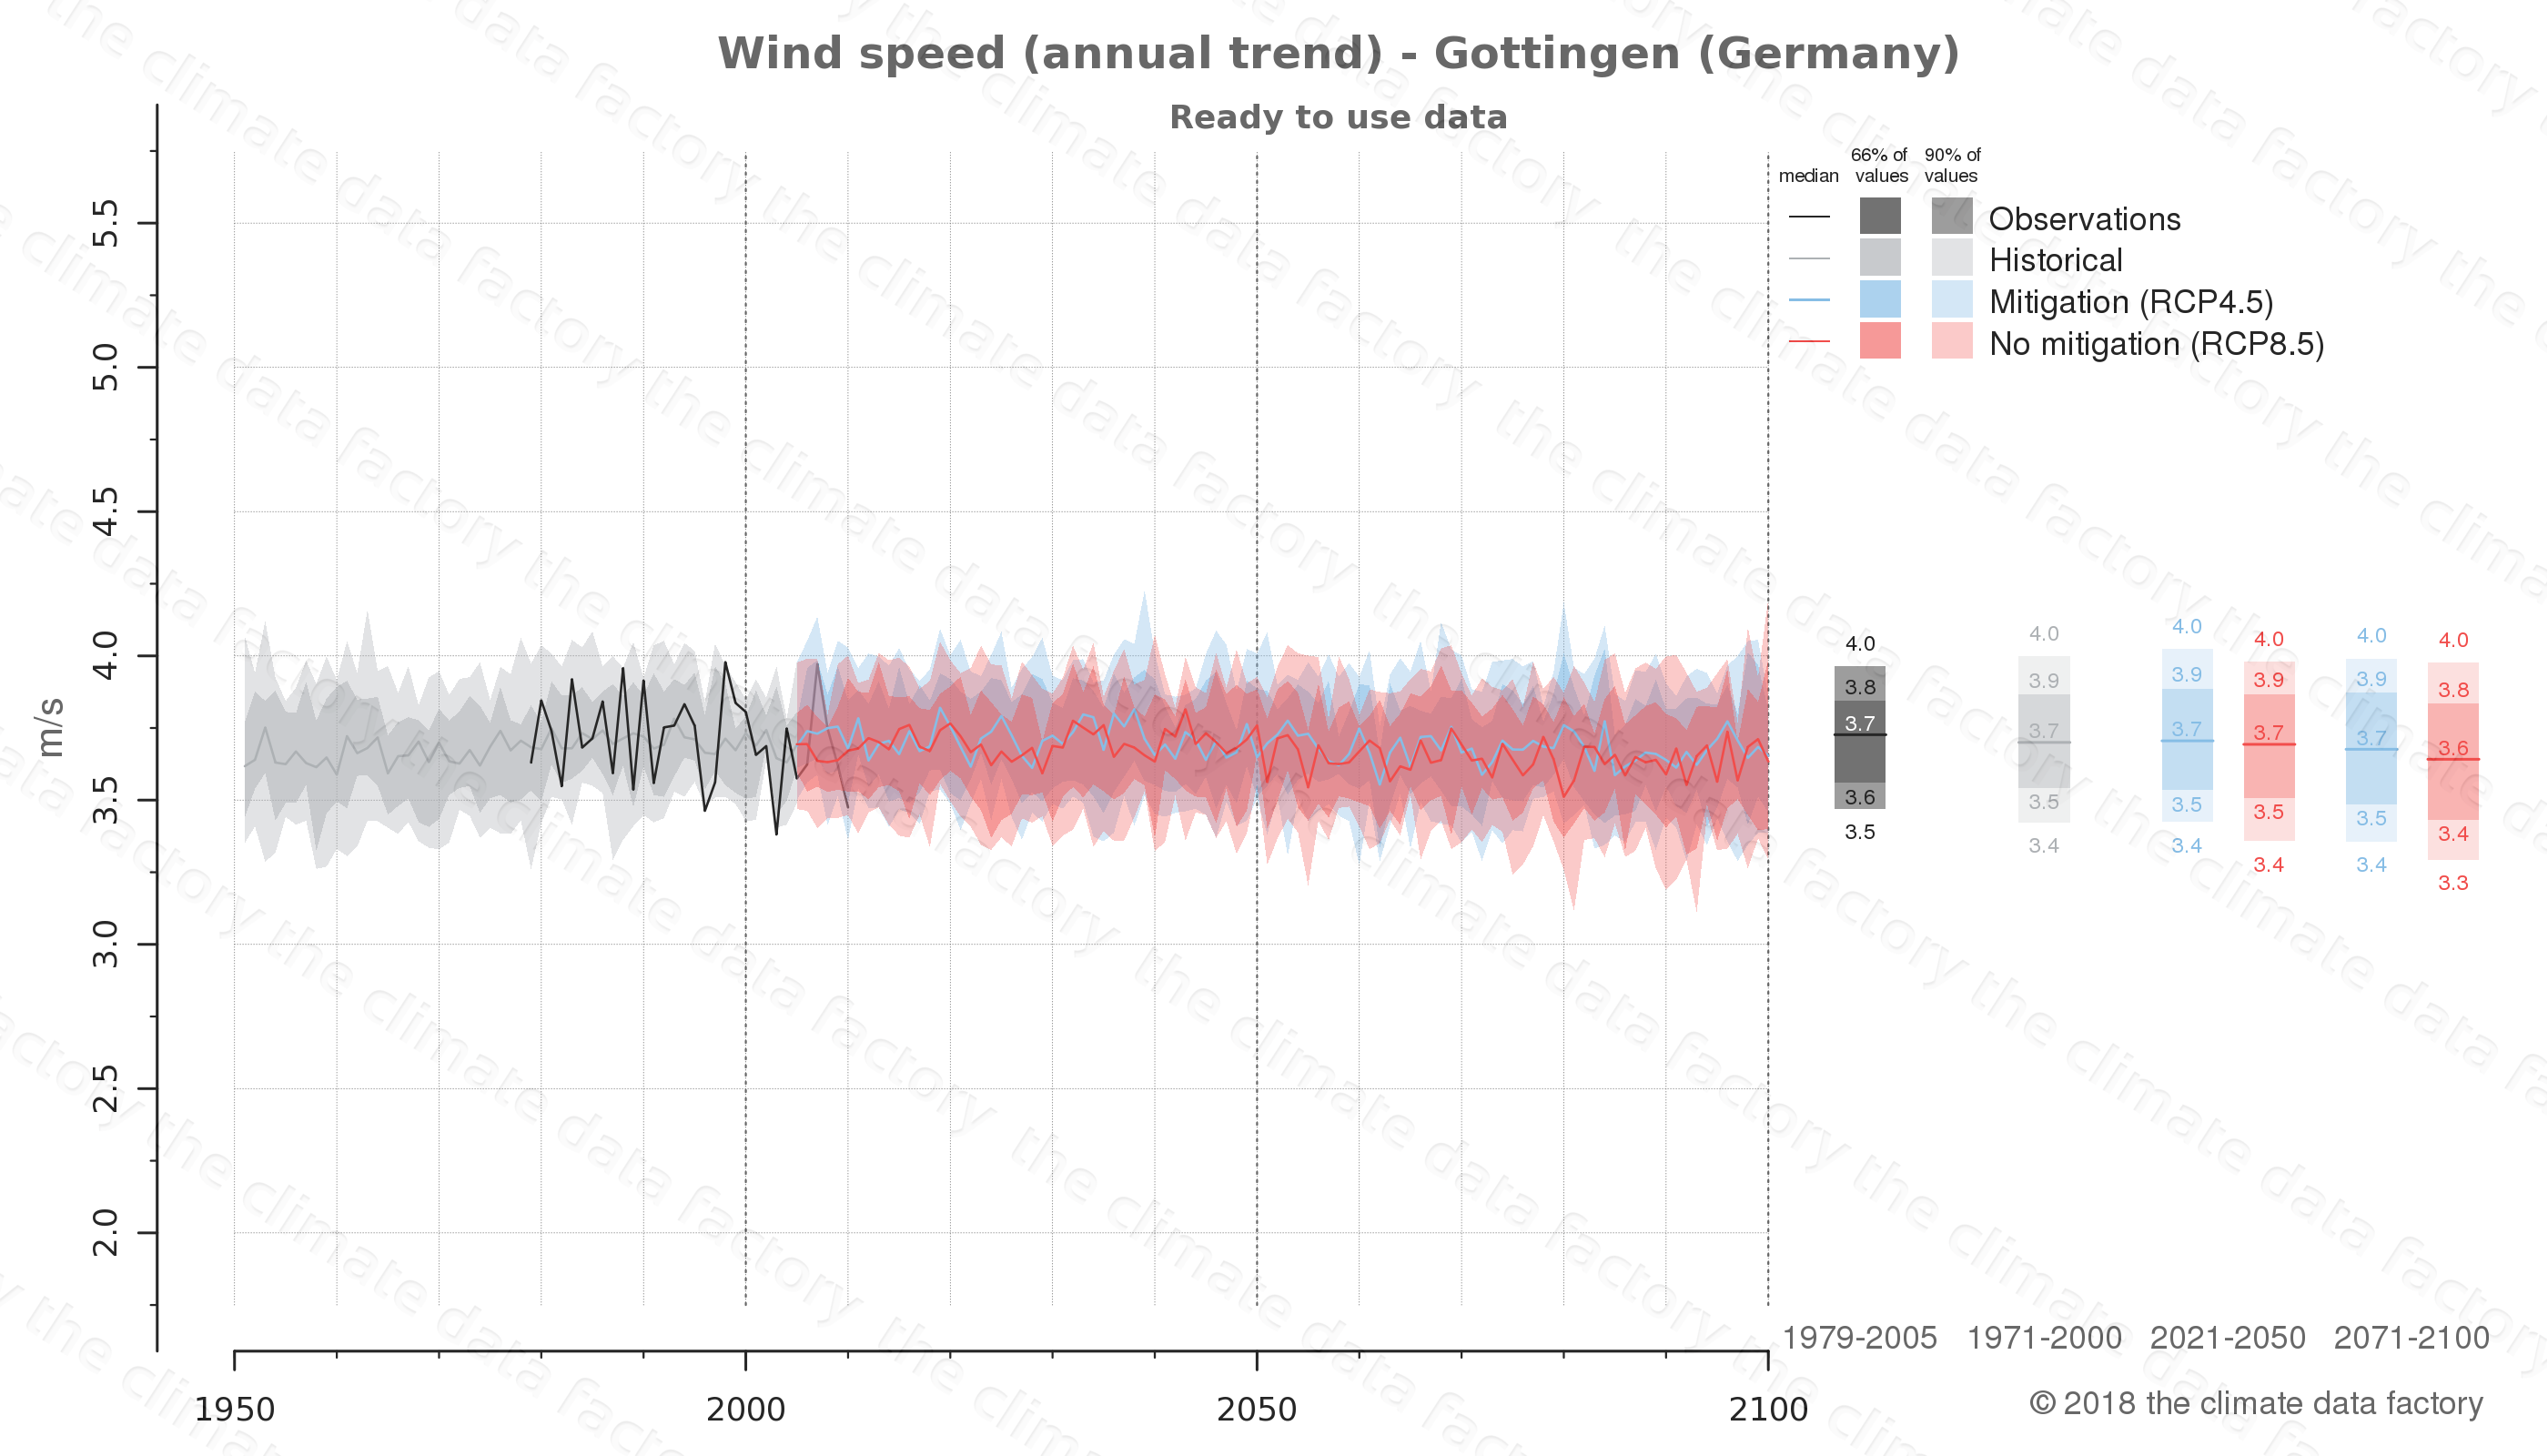 climate change data policy adaptation climate graph city data wind-speed gottingen germany